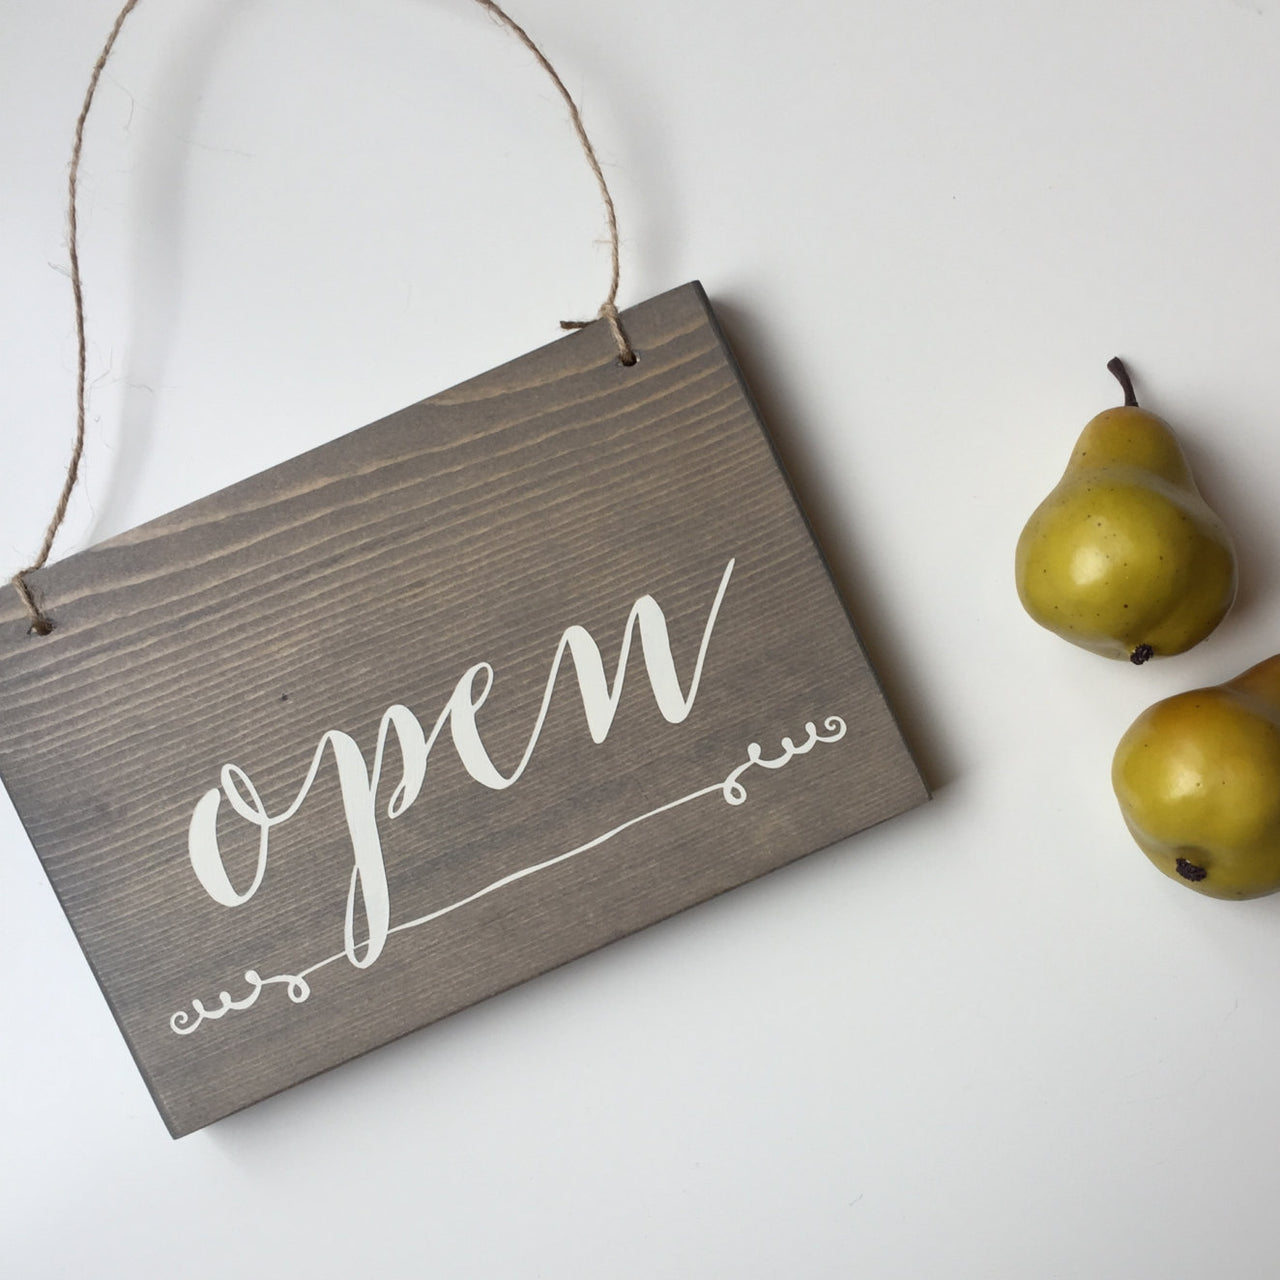 Reversible Open & Closed Sign, Do Not Disturb, Open and Closed Sign, Yoga Studio Decor, Studio Open Sign, Open Closed Sign, In Session Sign